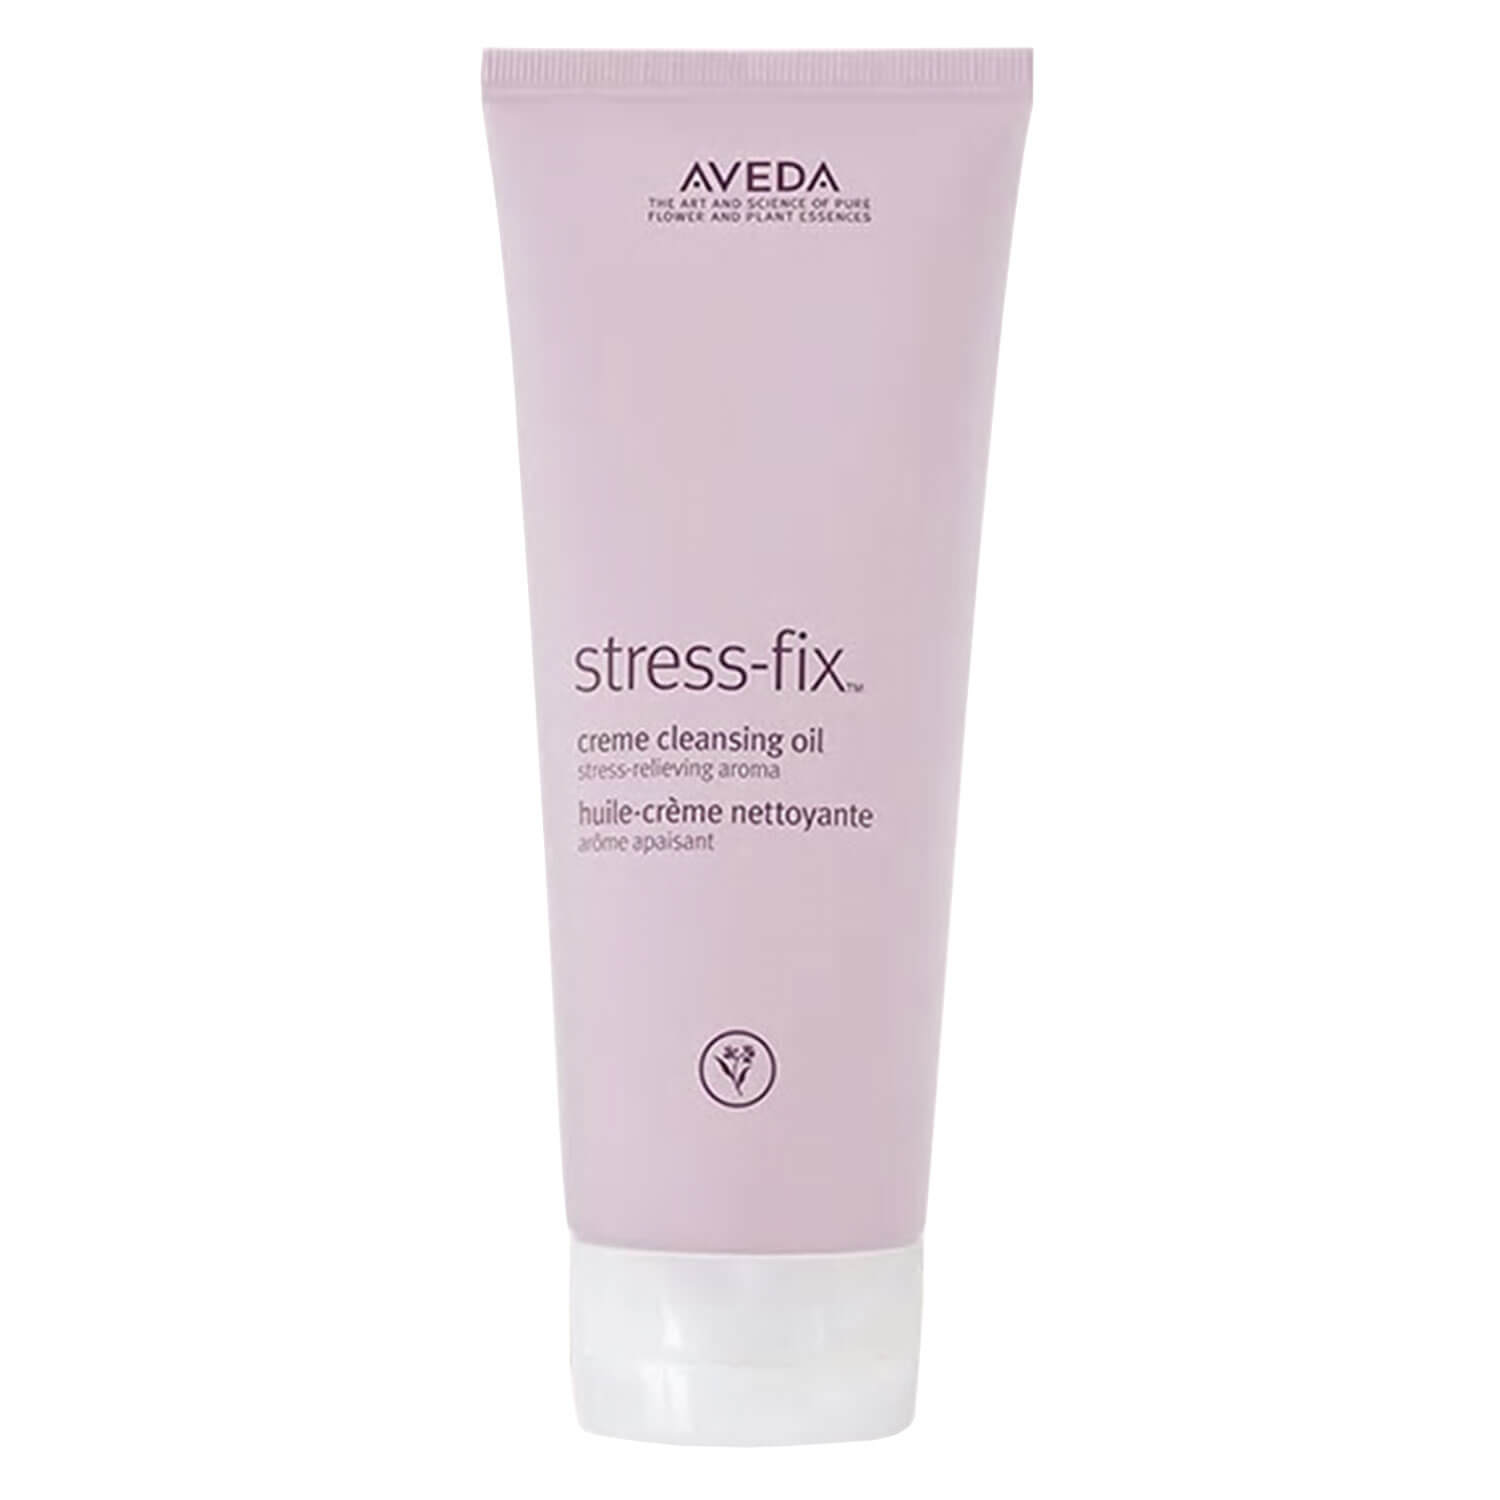 stress-fix - creme cleansing oil